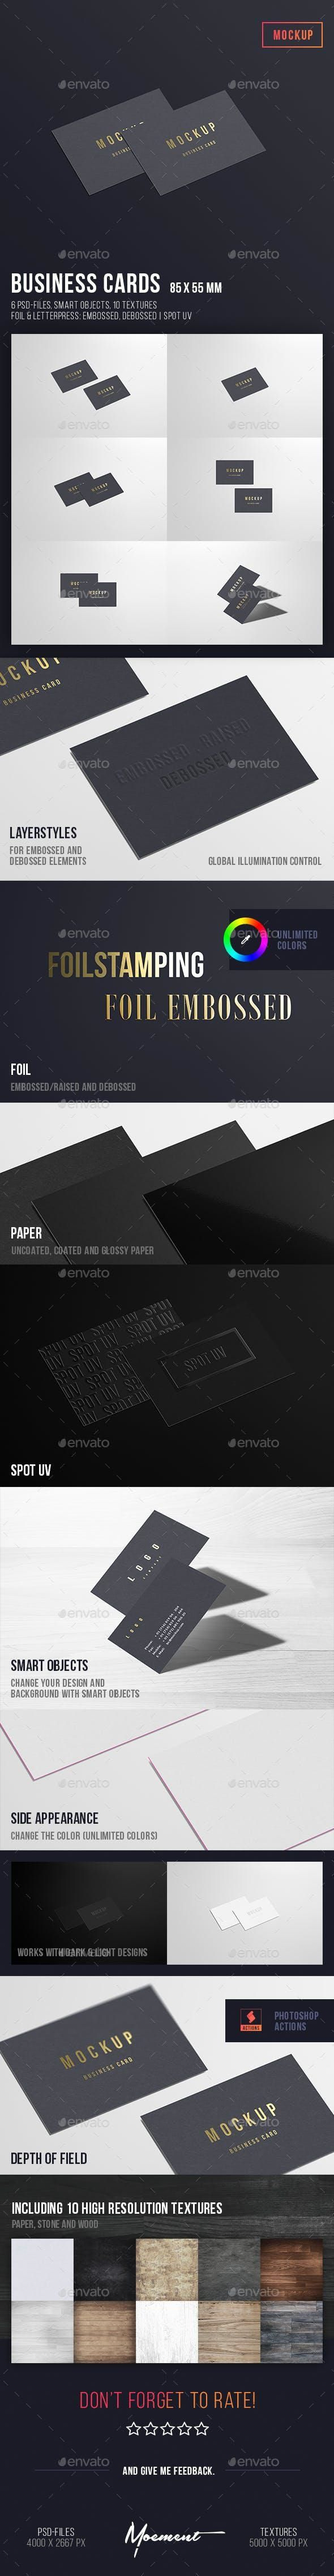 Business Cards Mockup 85x55 Business Card Mock Up Business Cards Mockup Psd Printing Business Cards